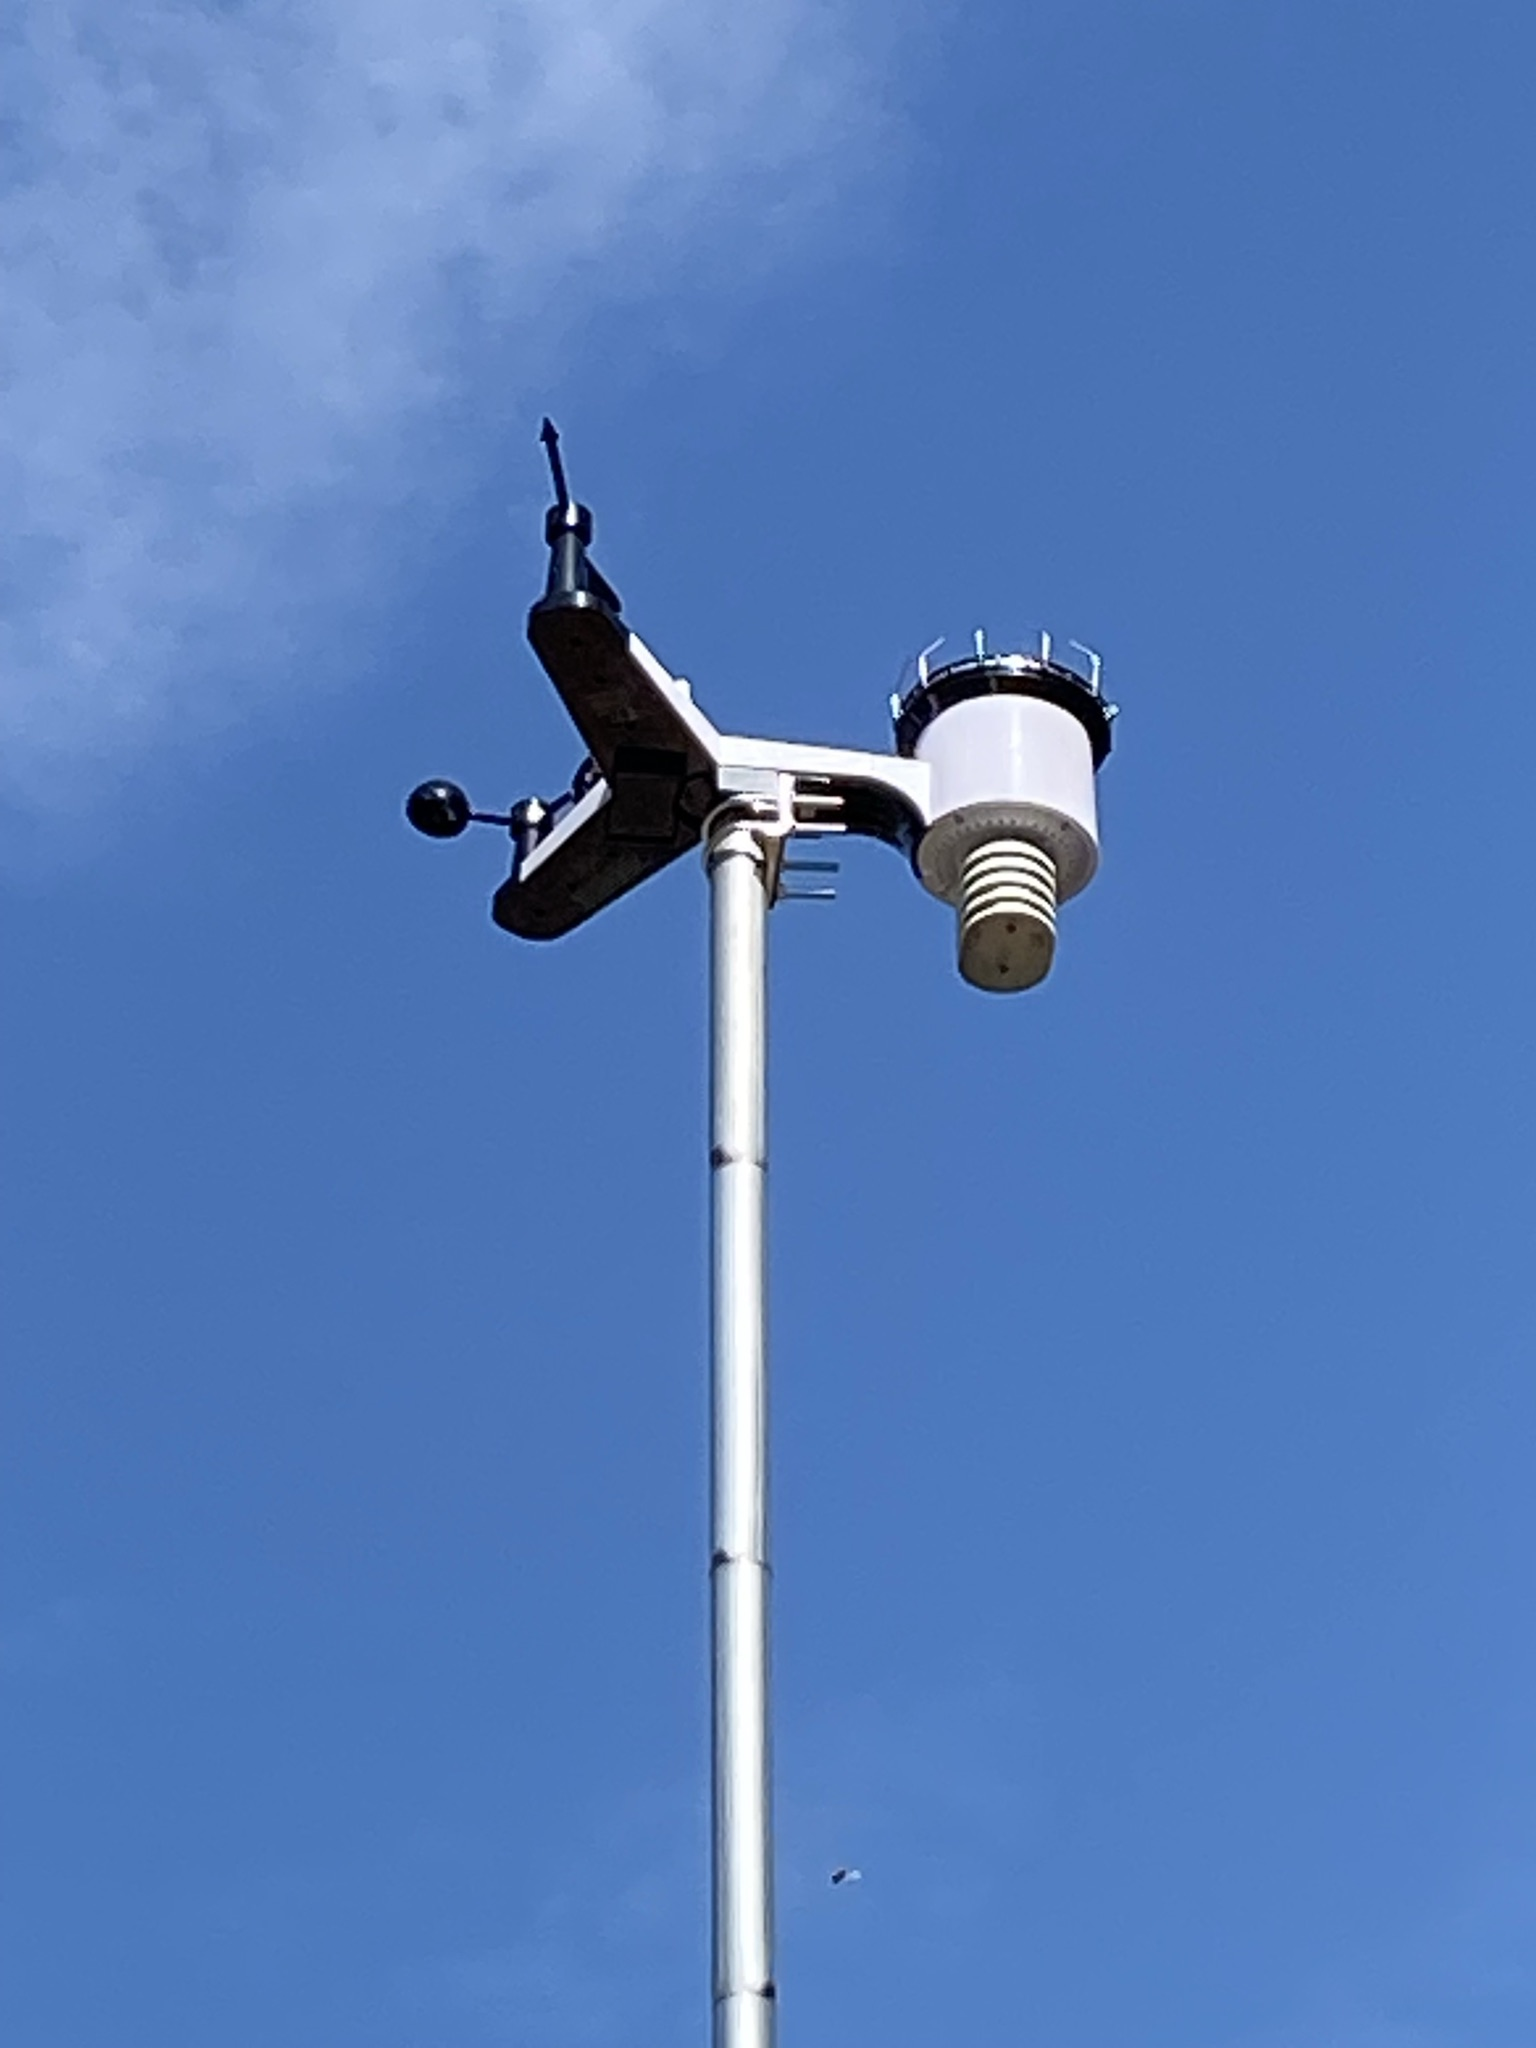 AACG weather station